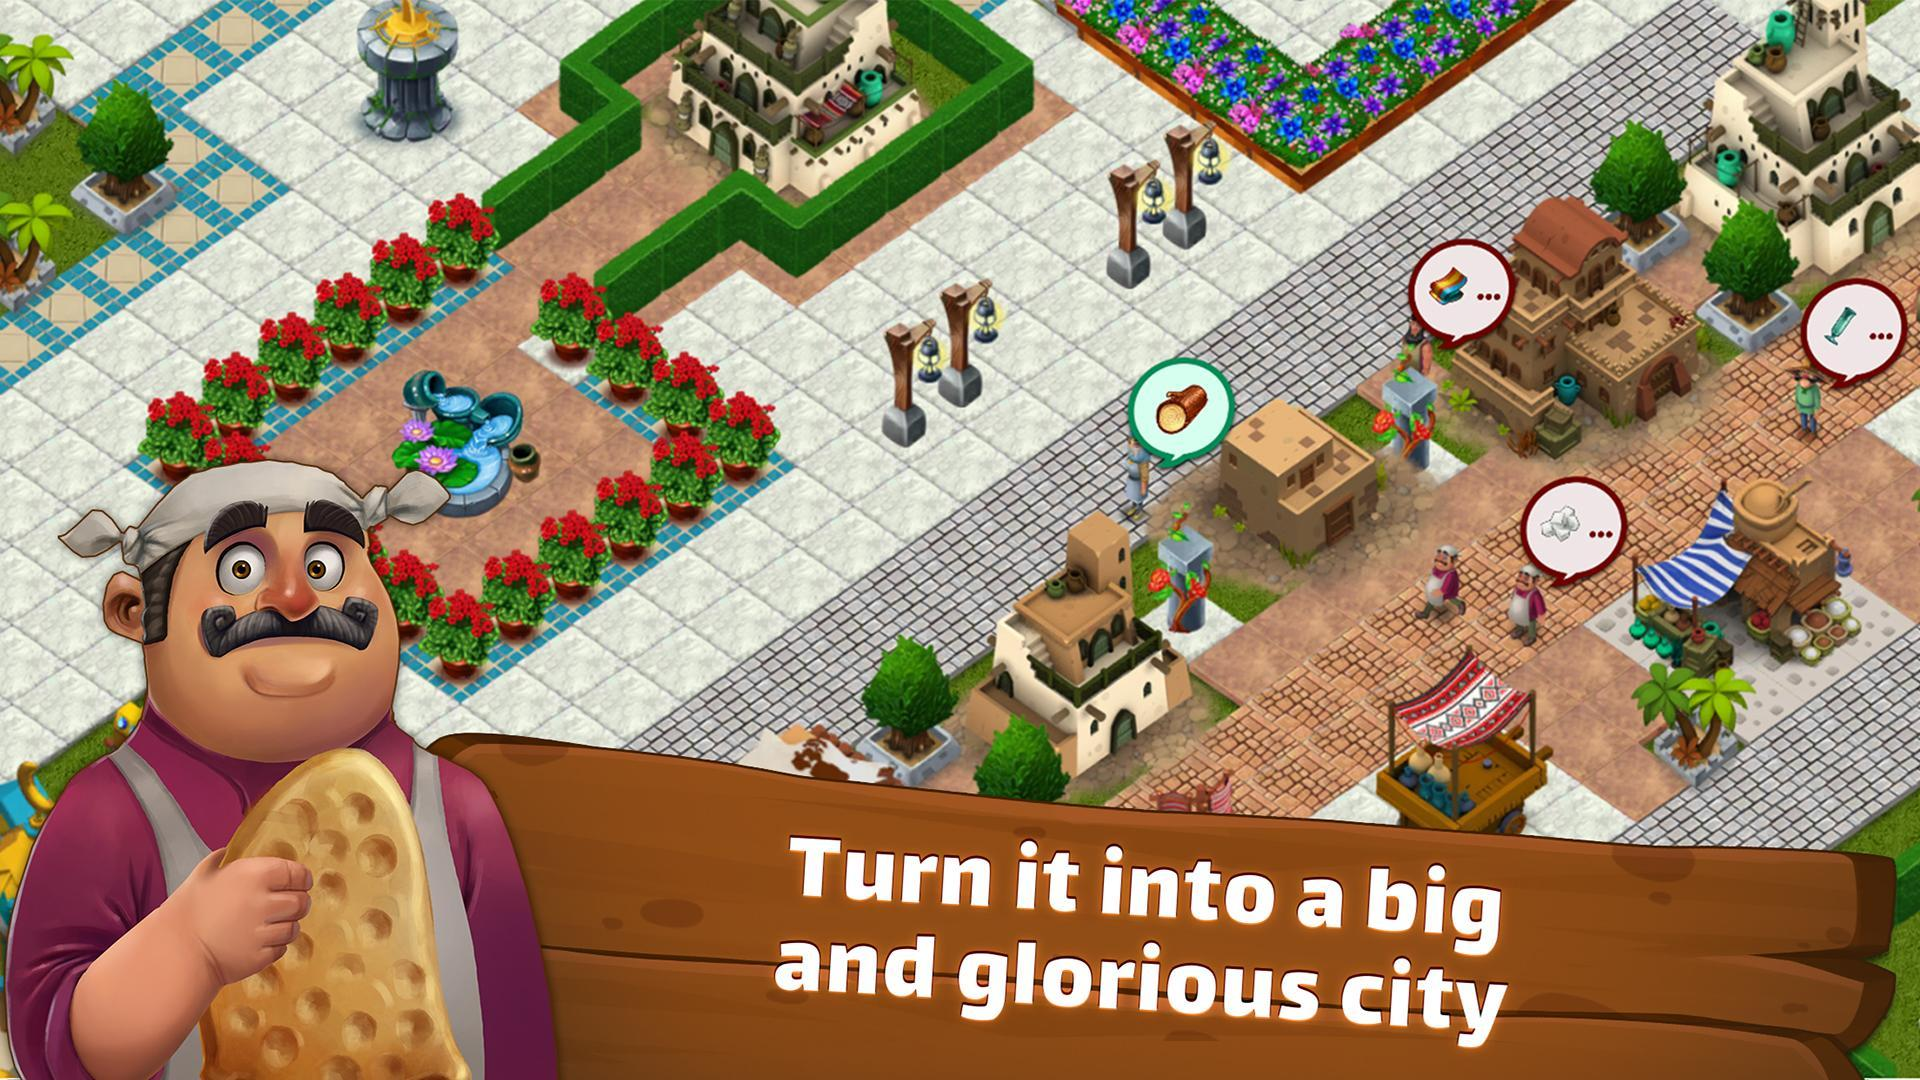 SunCity City Builder, Farming game like Cityville 1.26.1 Screenshot 2